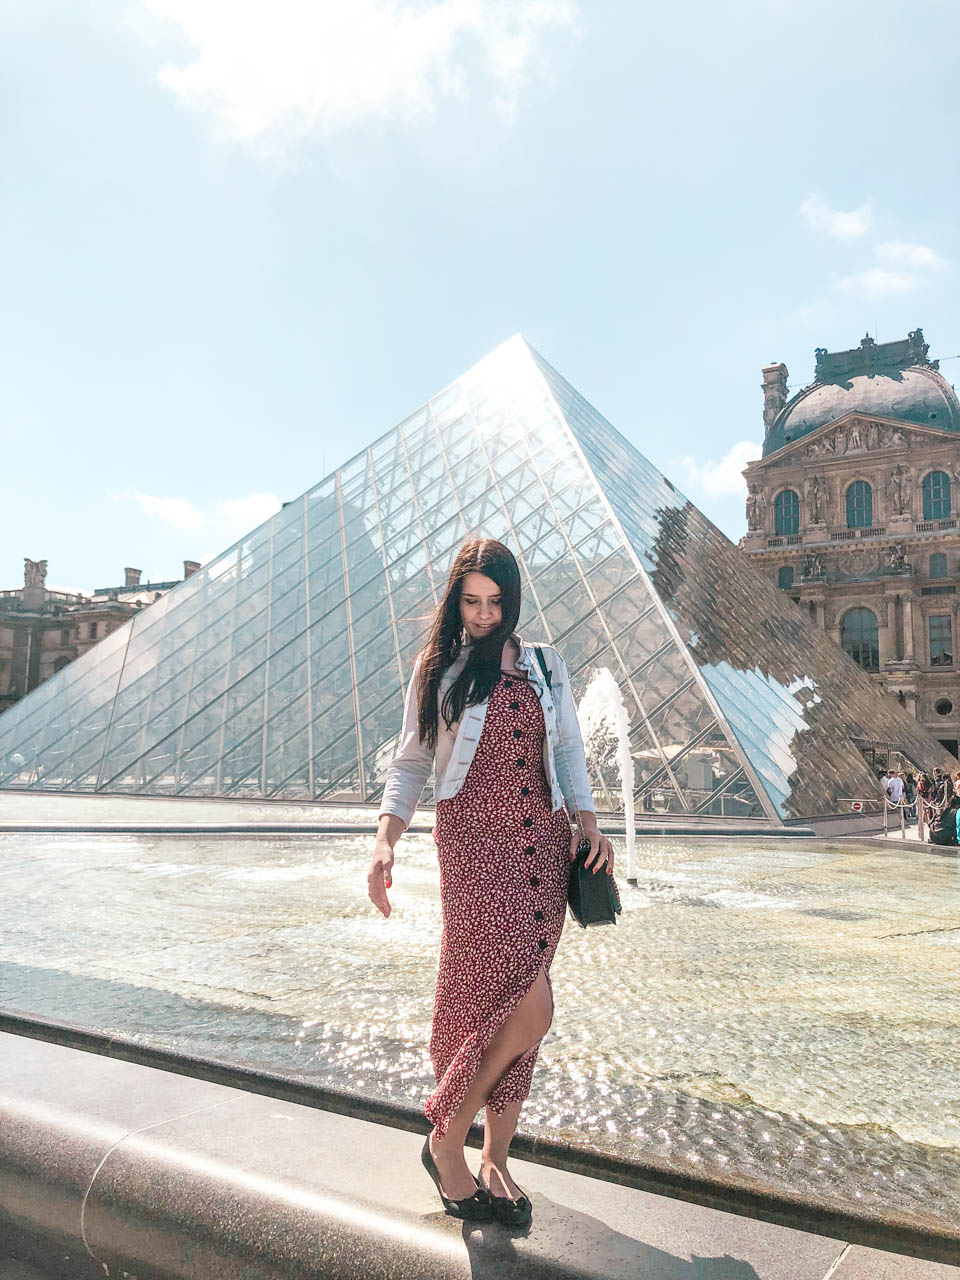 A dark-haired young woman in a denim jacket, a red and white floral dress and black ballet flats standing on a fountain ledge with the Louvre Pyramid behind her back